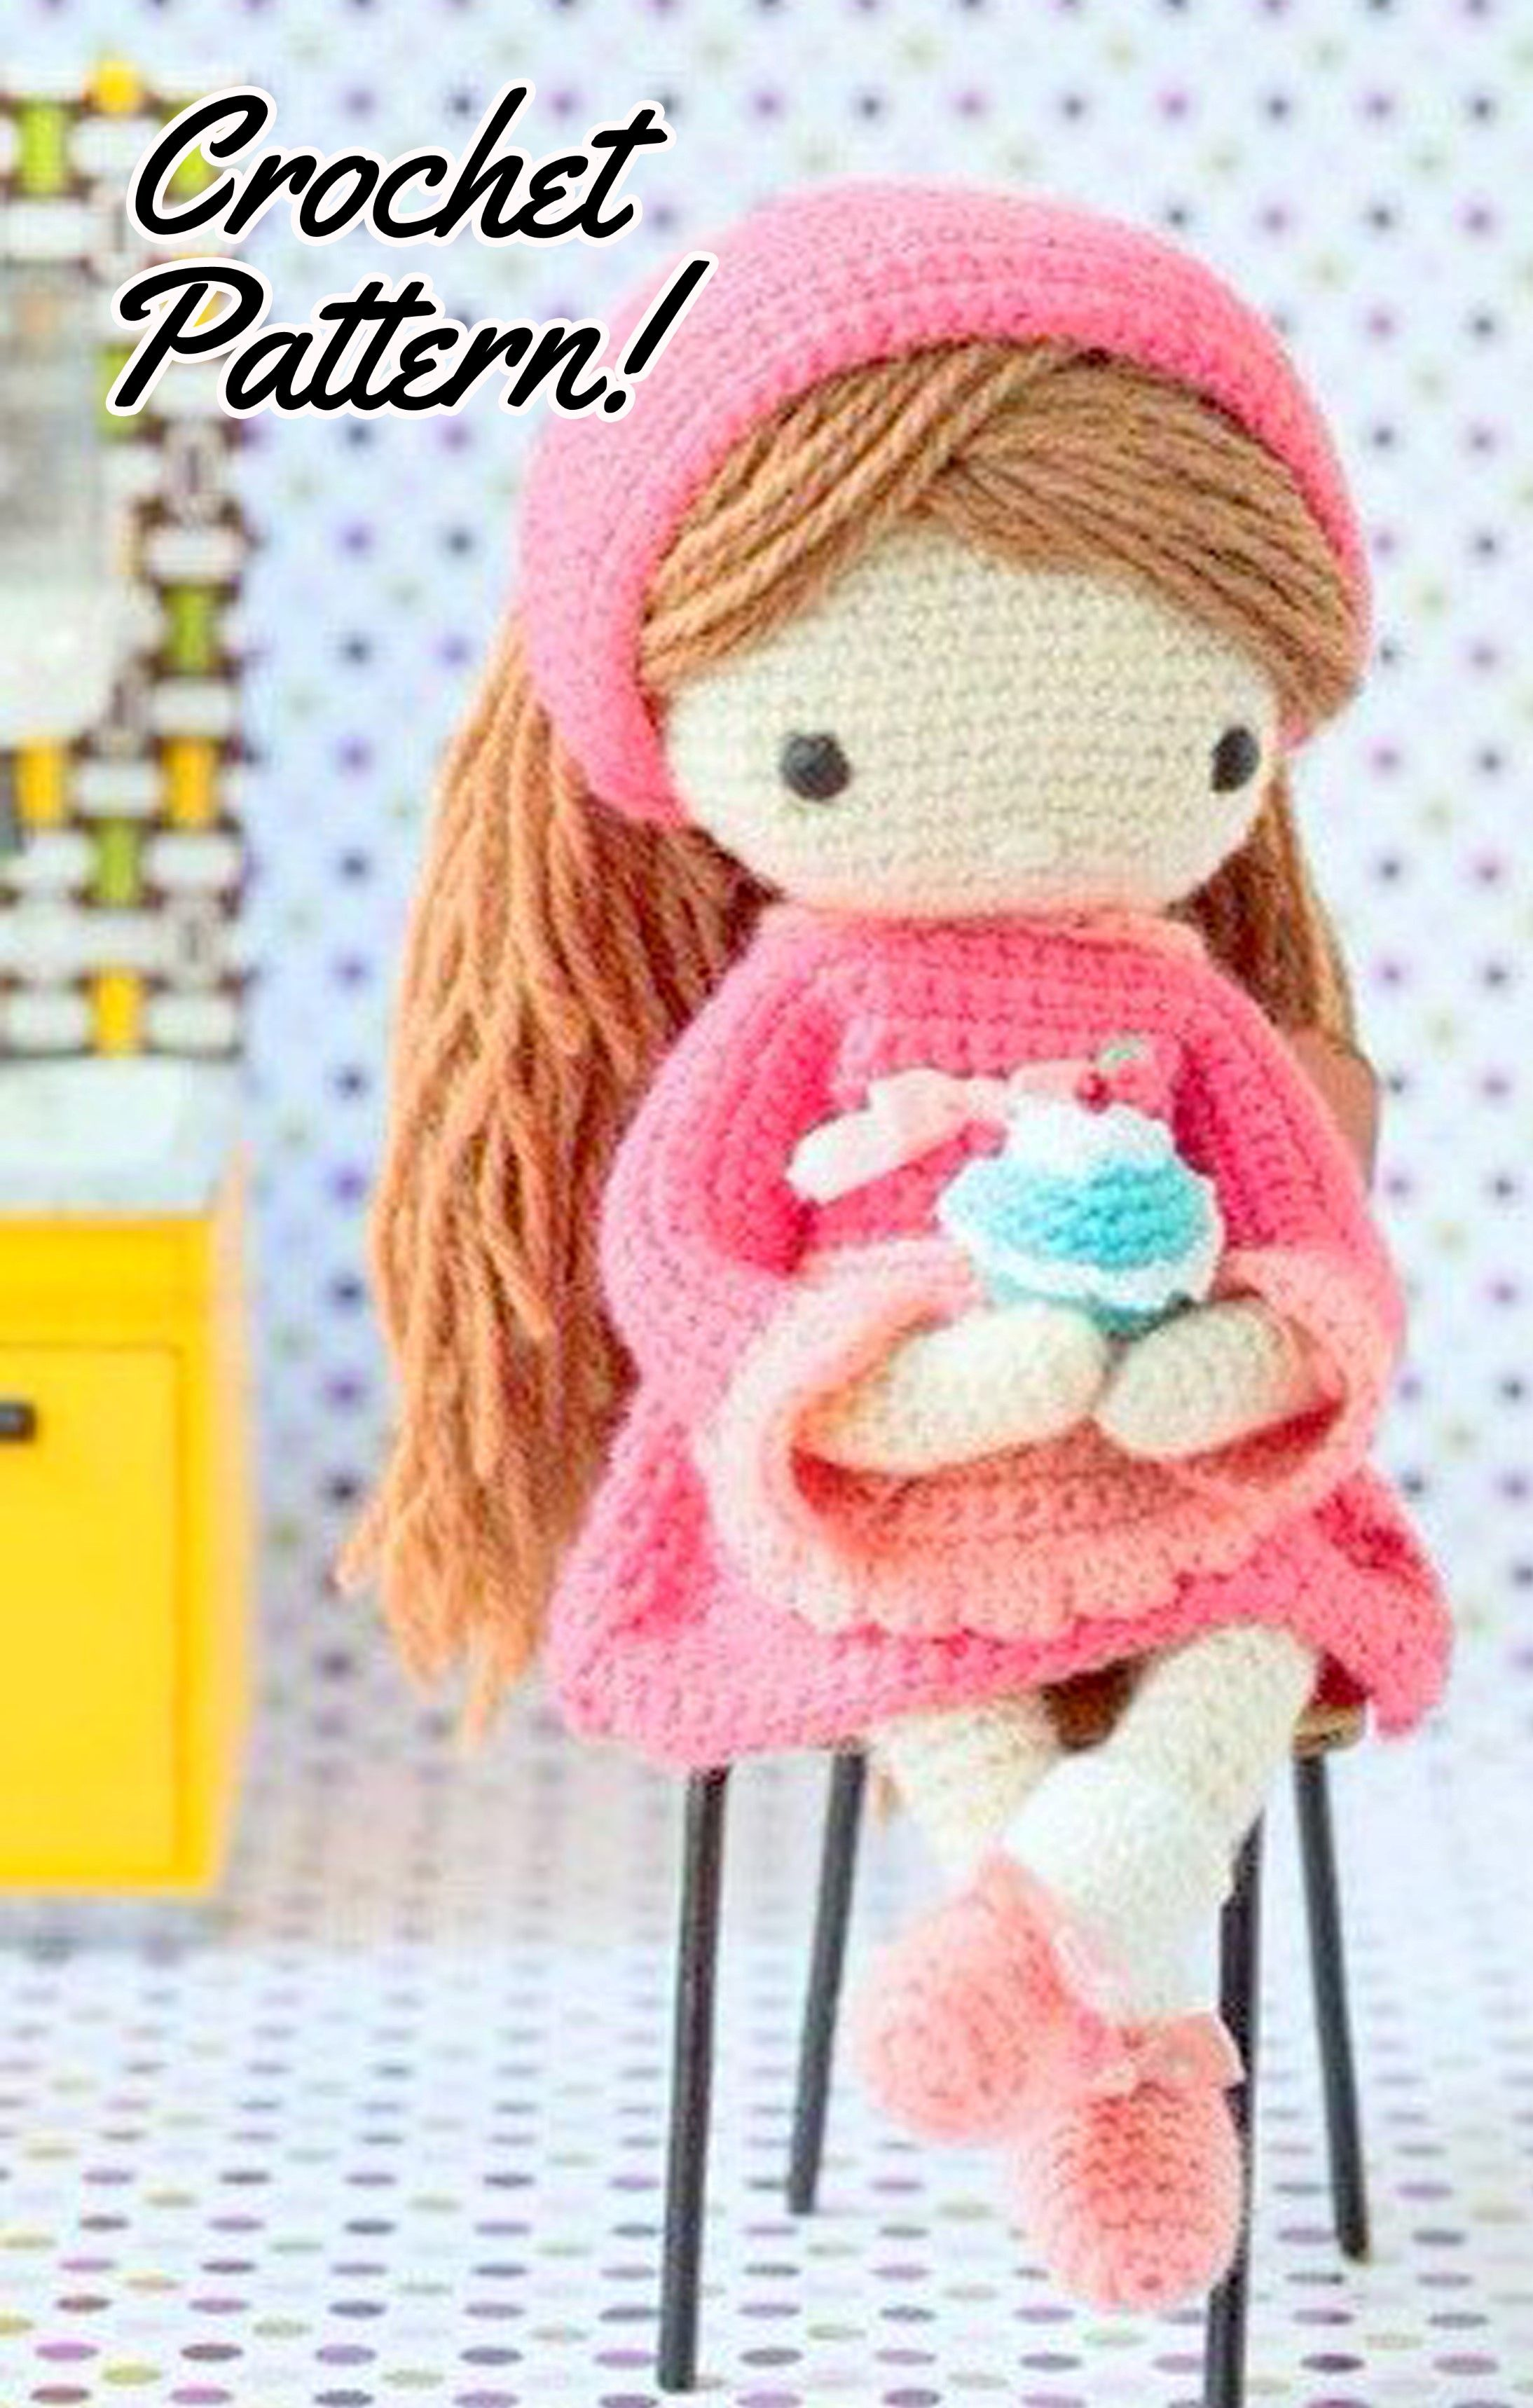 My Crochet Doll - A Fabulous Crochet Doll Pattern with Over 50 ... | 3437x2188